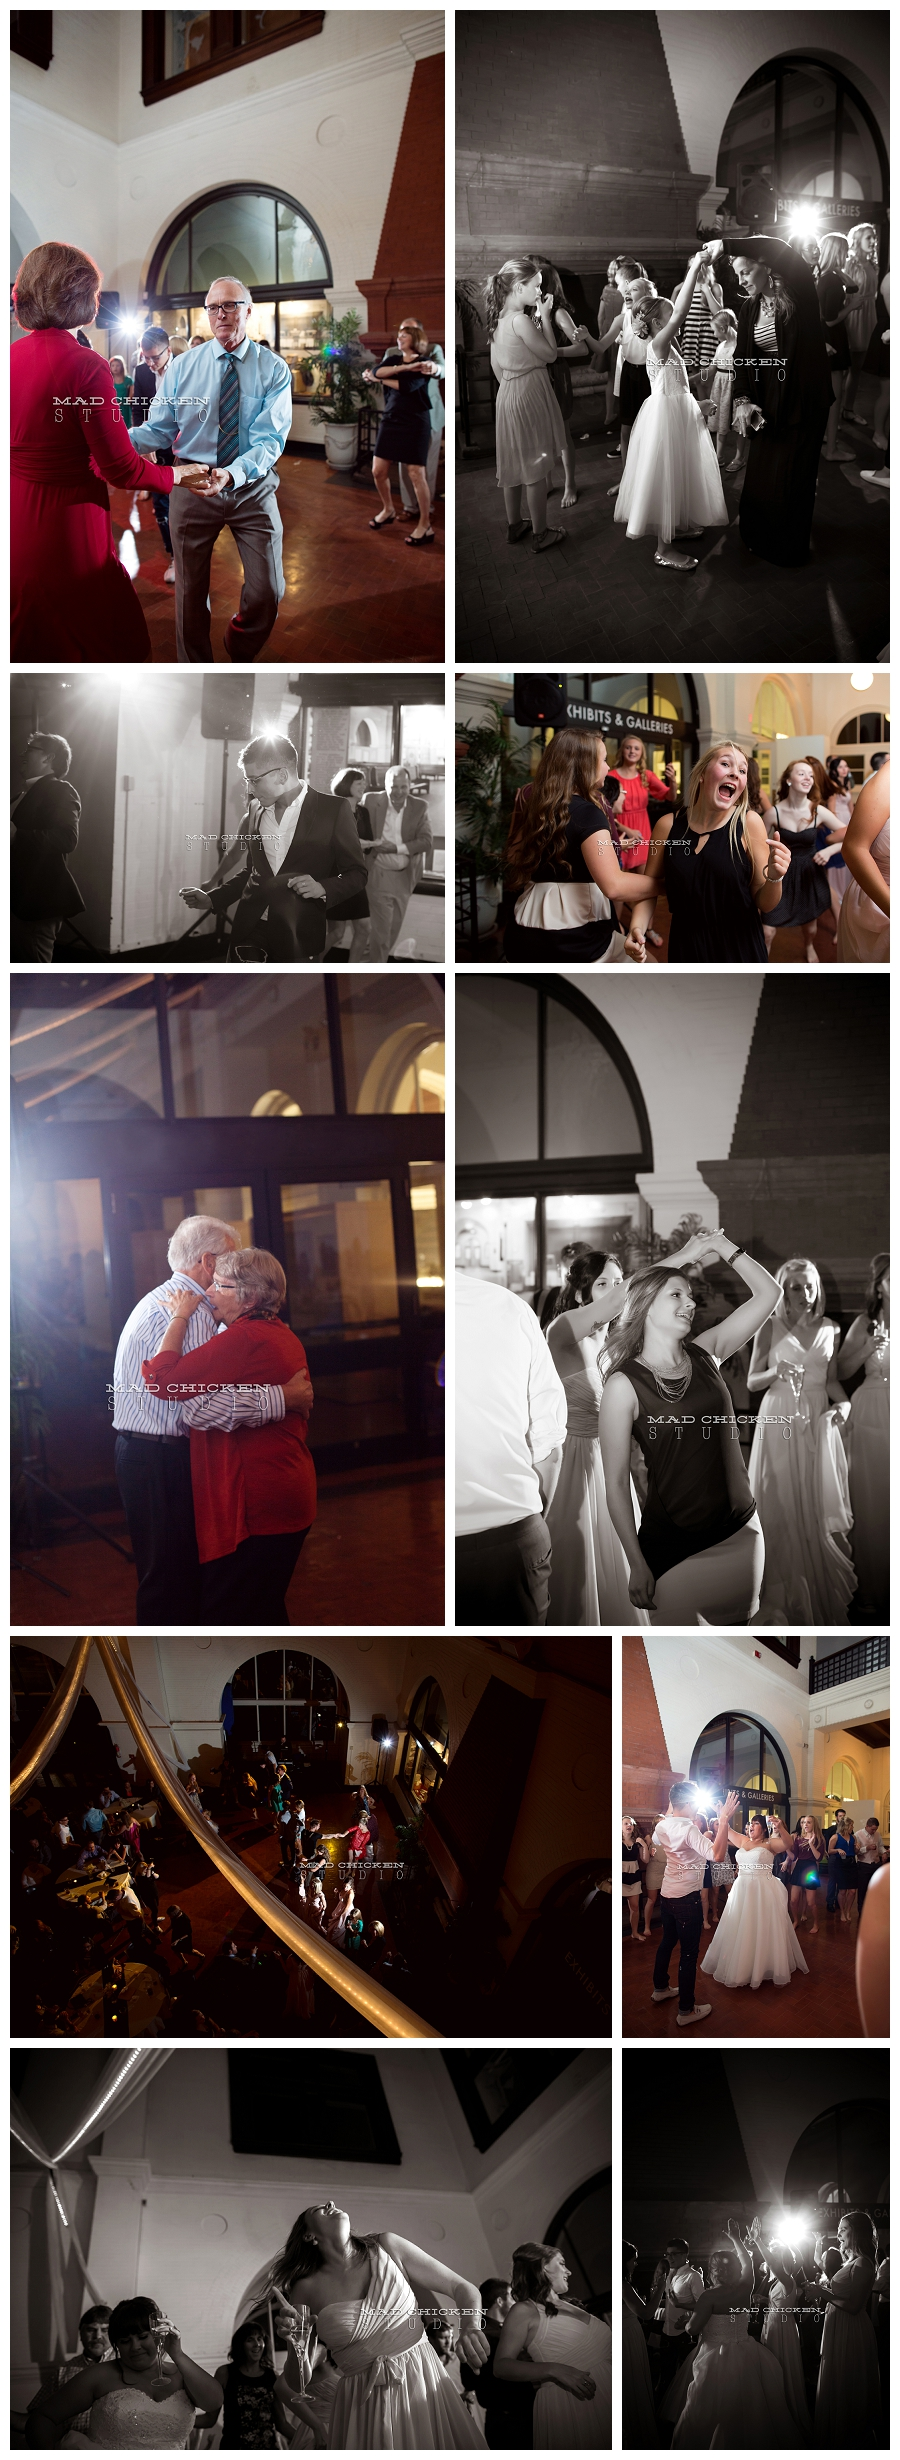 017 duluth wedding photographer mad chicken studio photographing candid guests dancing at the depot duluth.jpg